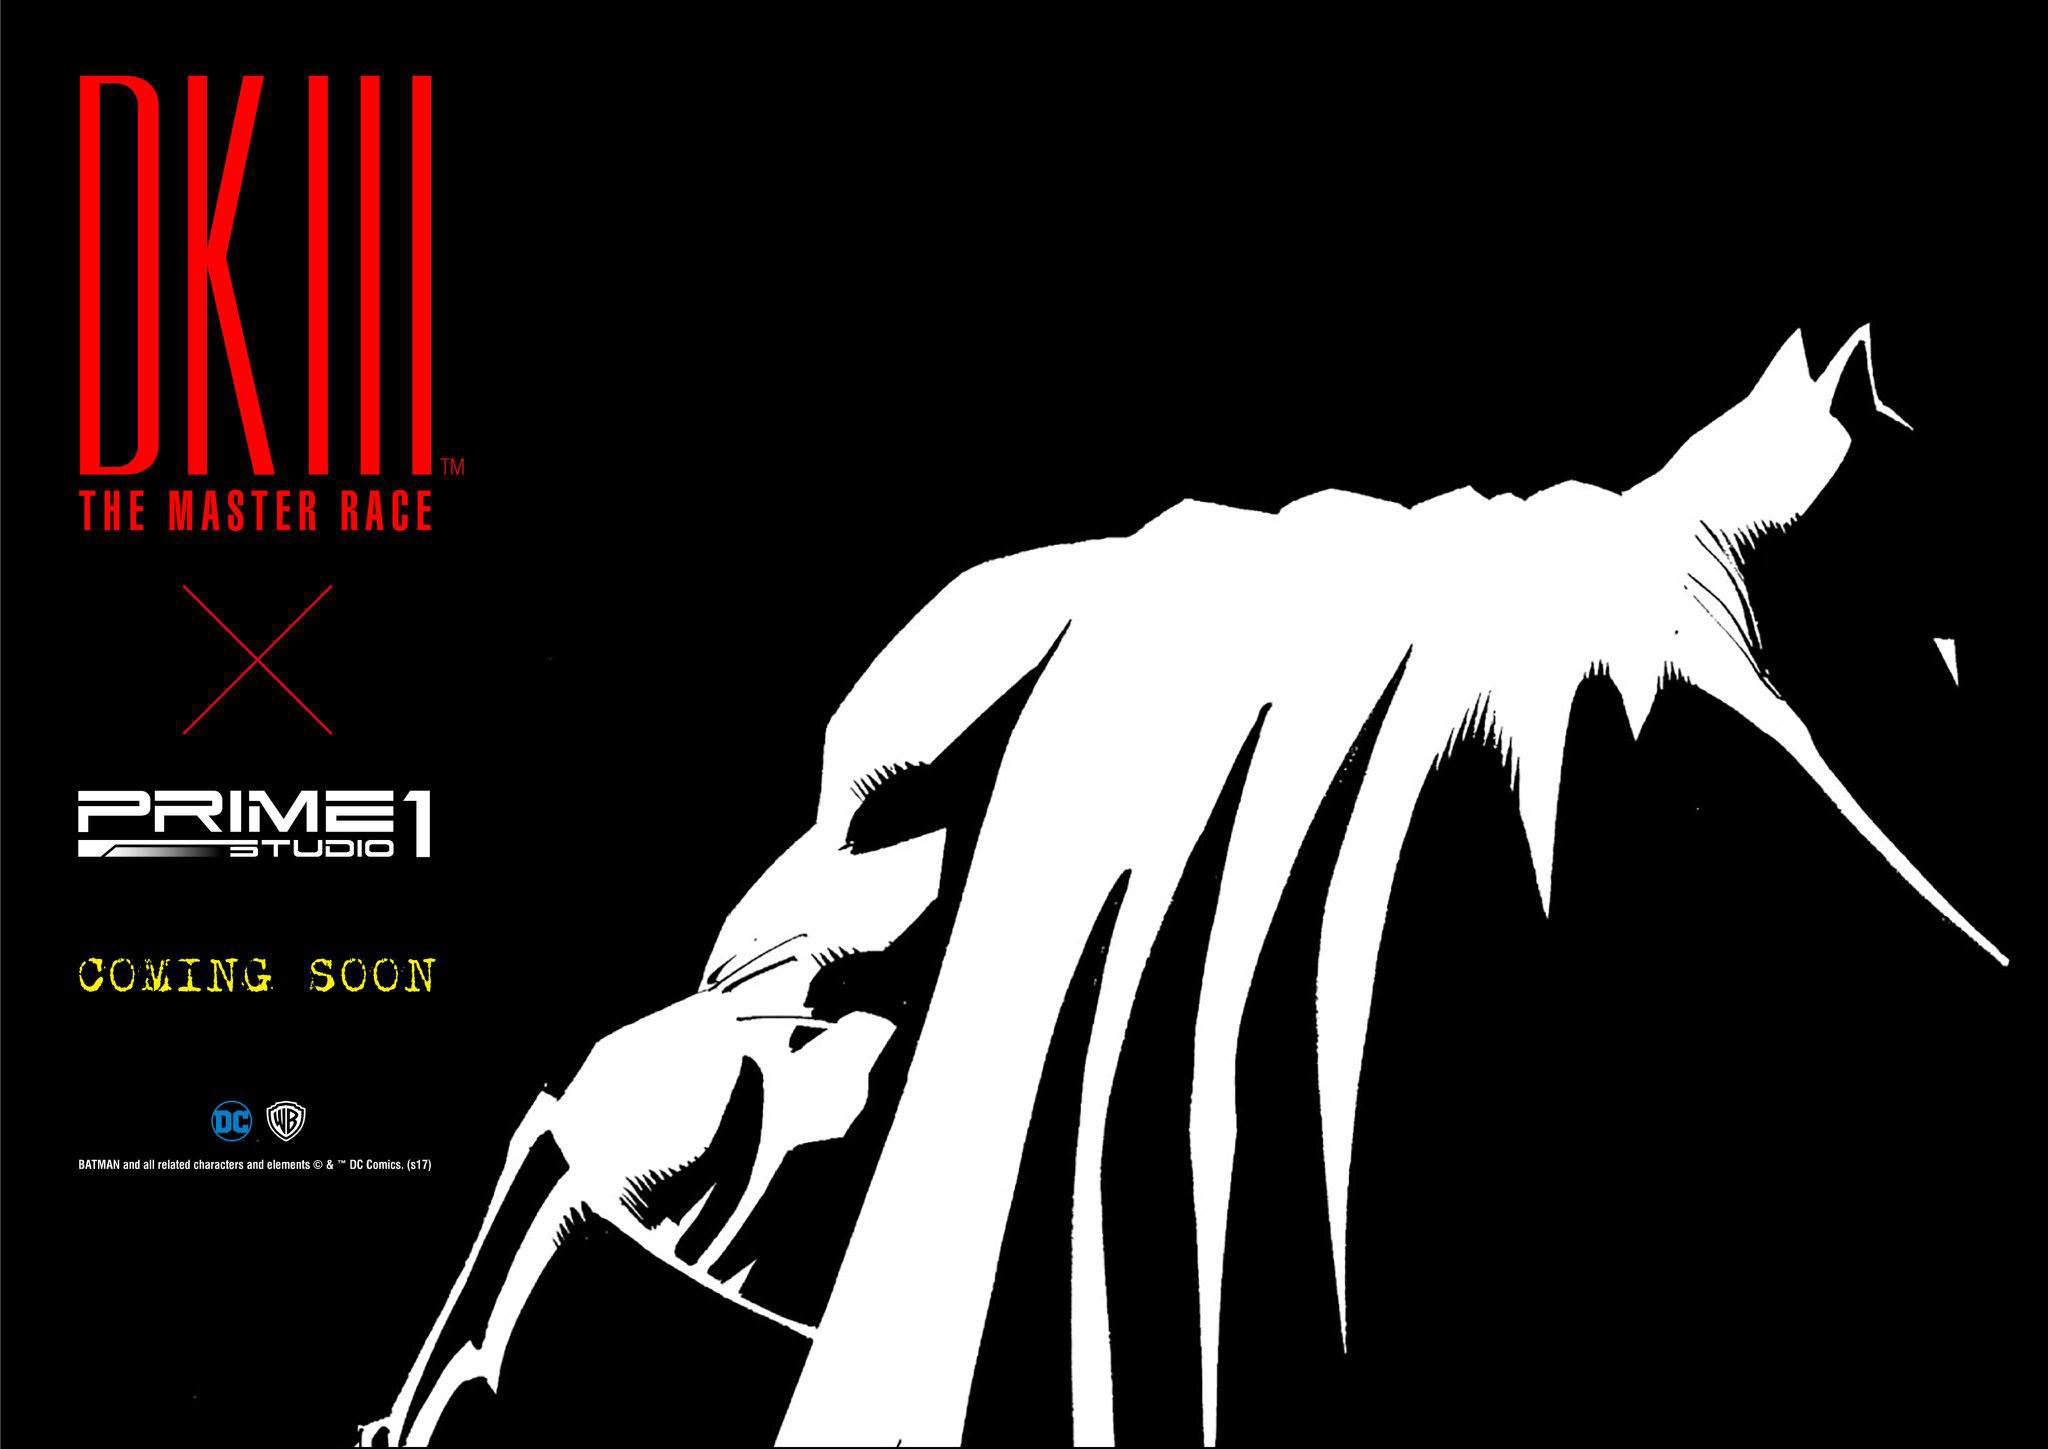 prime-1-studio-batman-dark-knight-3-master-race-preview